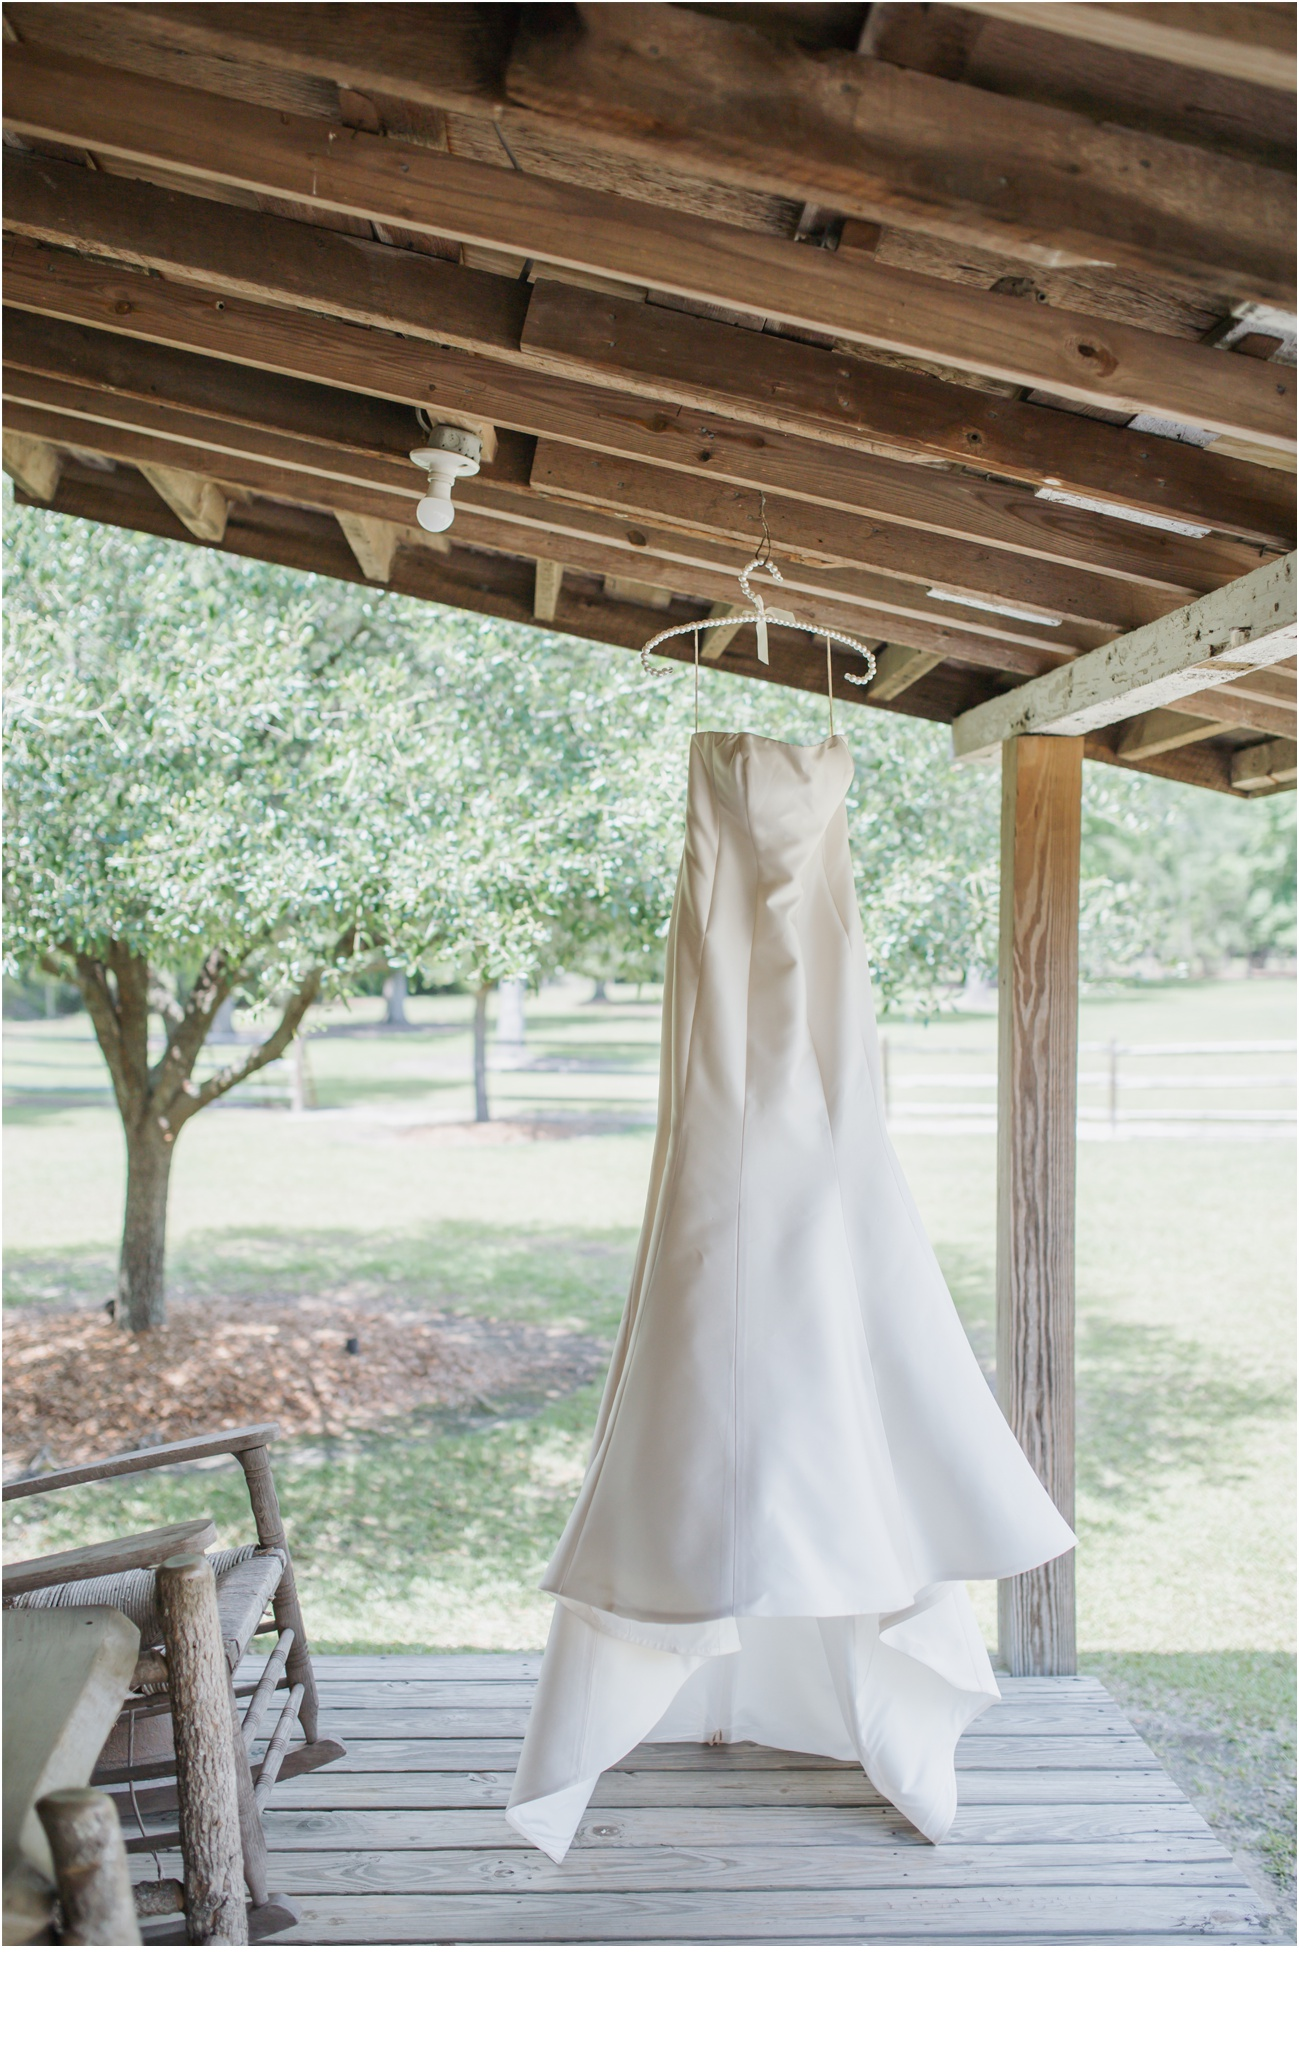 Rainey_Gregg_Photography_St._Simons_Island_Georgia_California_Wedding_Portrait_Photography_0835.jpg